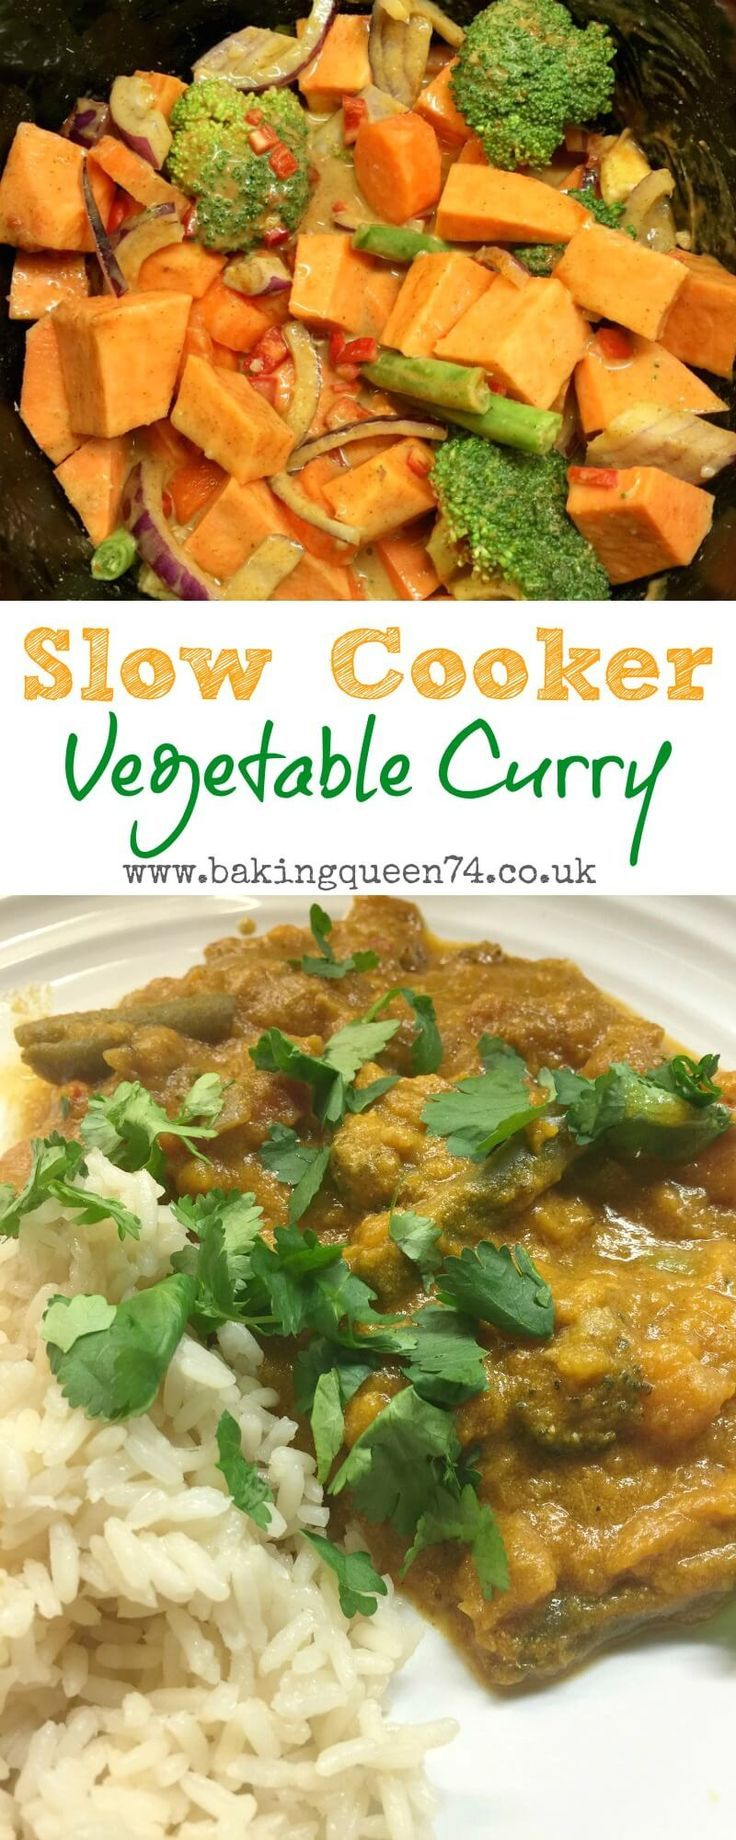 A warming slow cooker vegetable curry, using up all the veggies from the bottom of the fridge. Frugal, healthy and perfect for the cold weather! In my house we